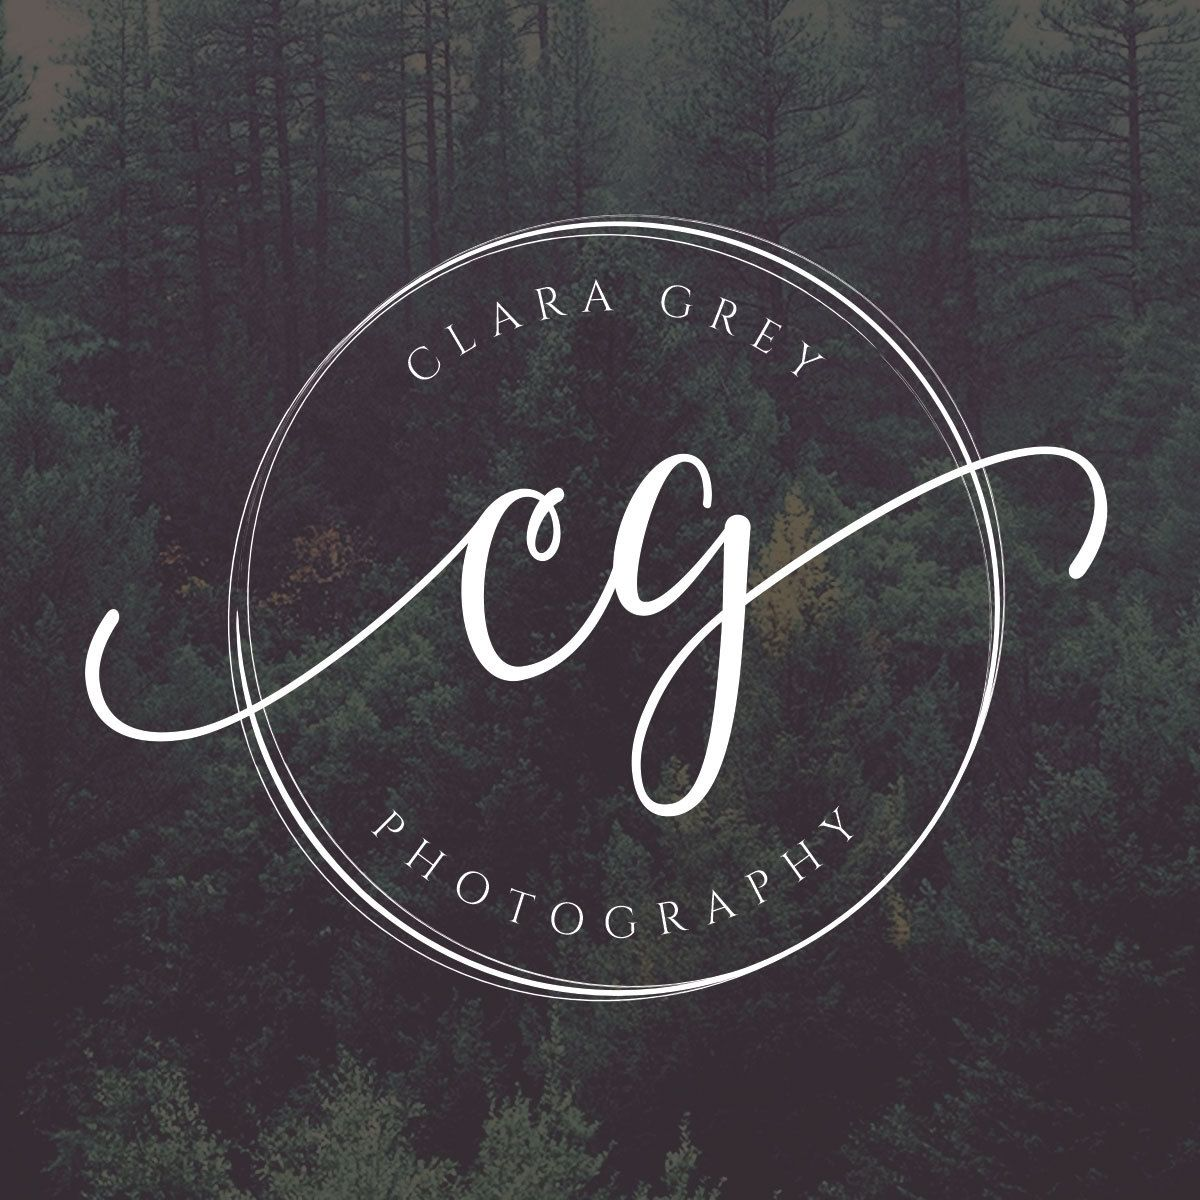 Buy this beautiful premade logo design with your business